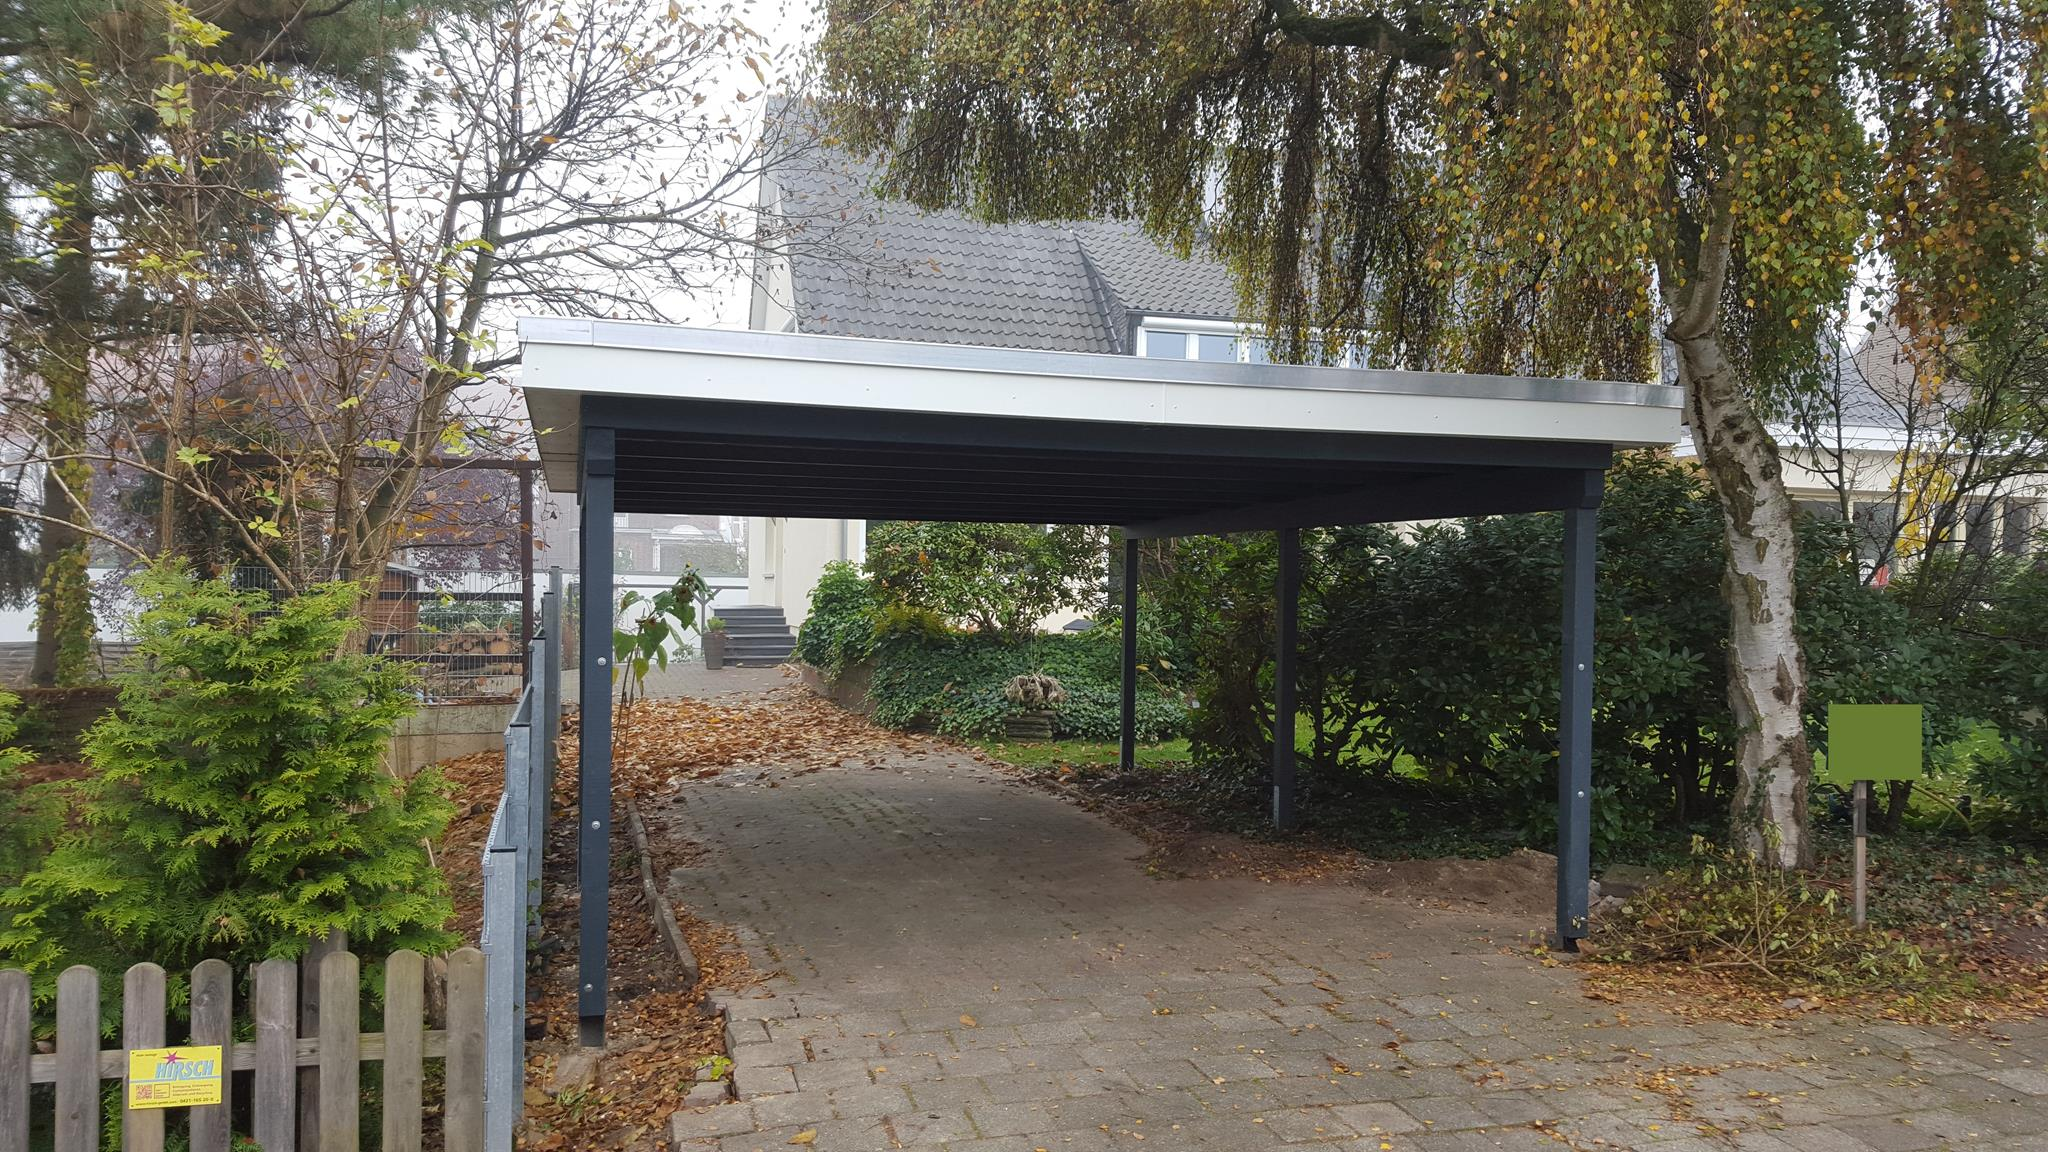 carports holzbau frese in bremen ihr partner im holzbau und bedachungen. Black Bedroom Furniture Sets. Home Design Ideas